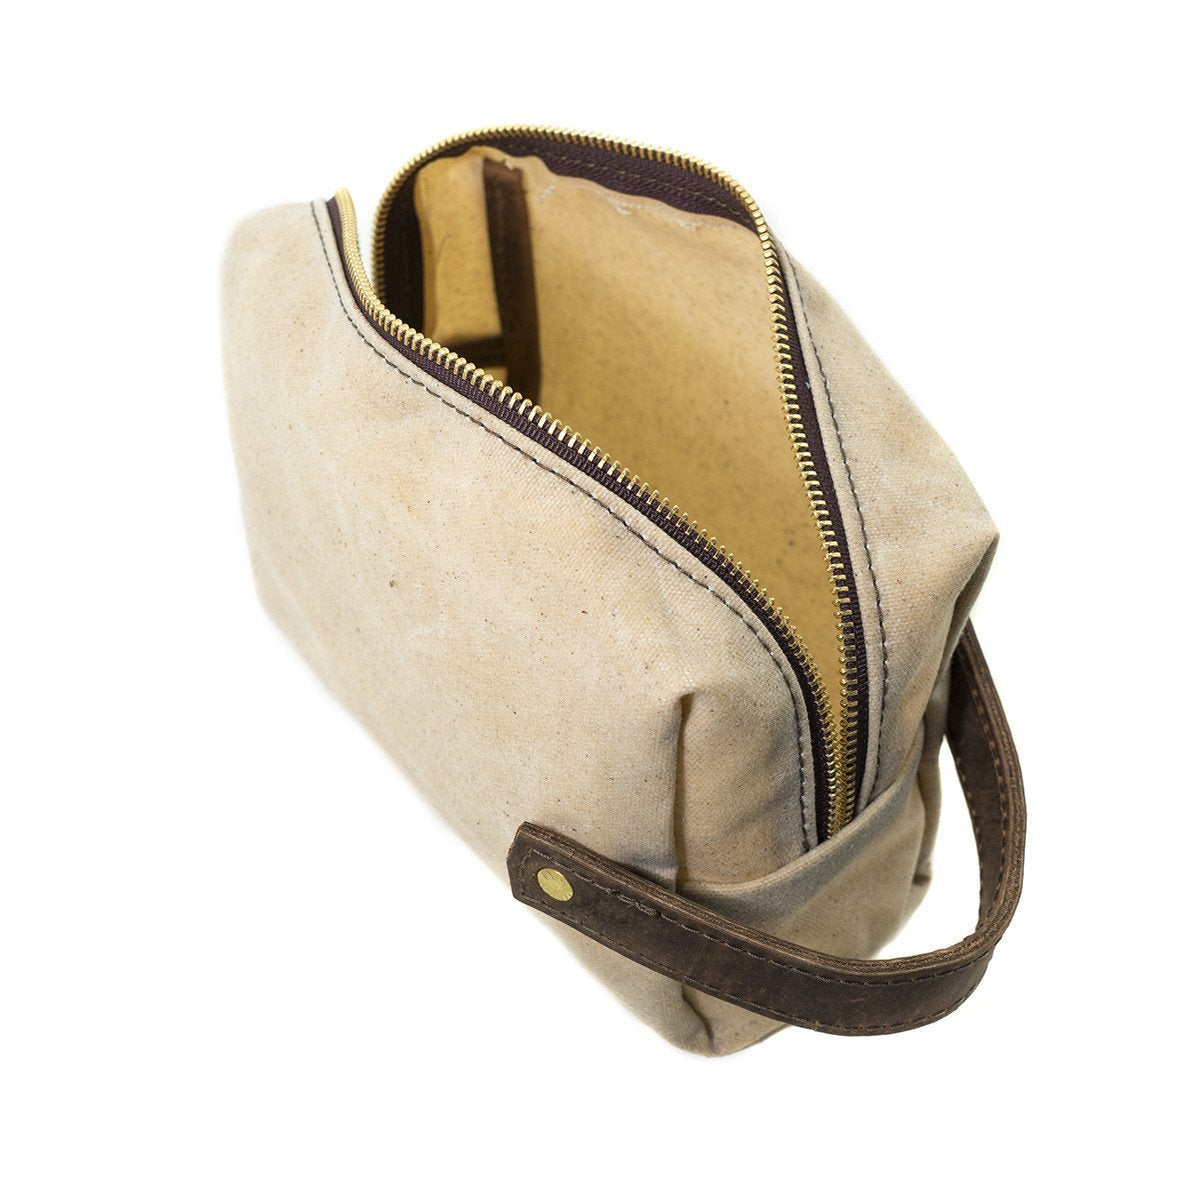 Pouch - High Line Canvas Pouch - Medium